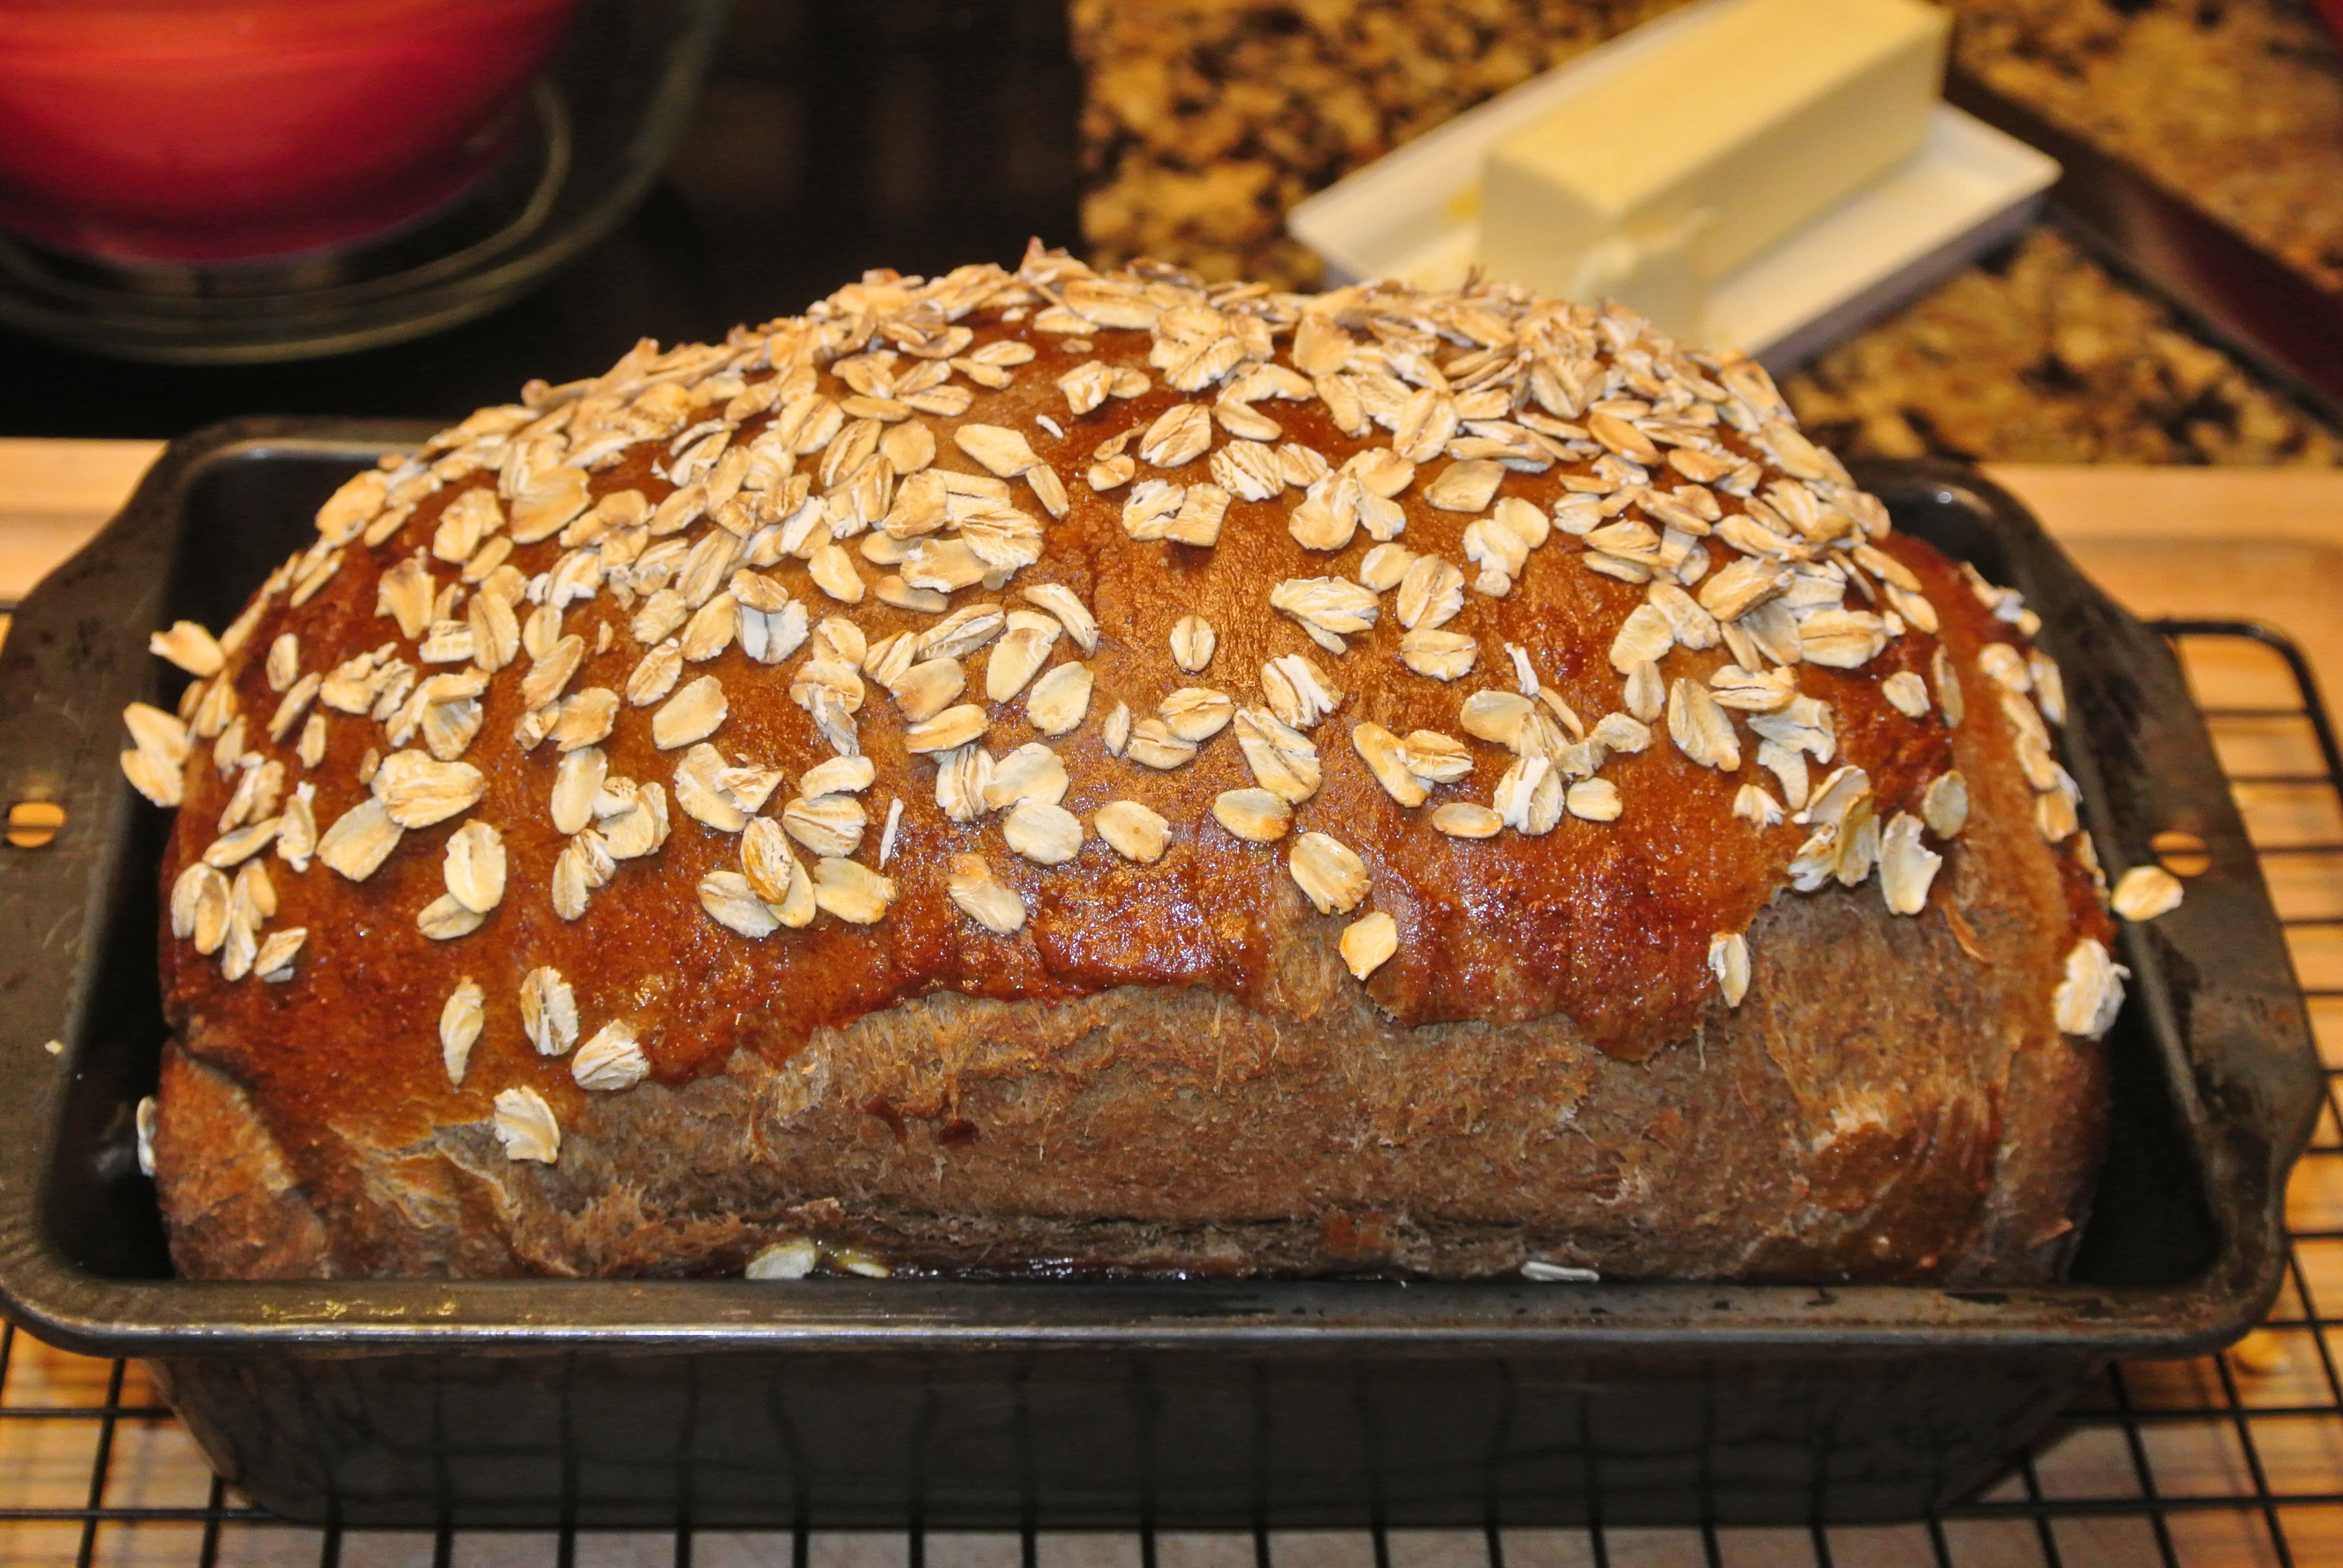 My Imperial Stout bread!